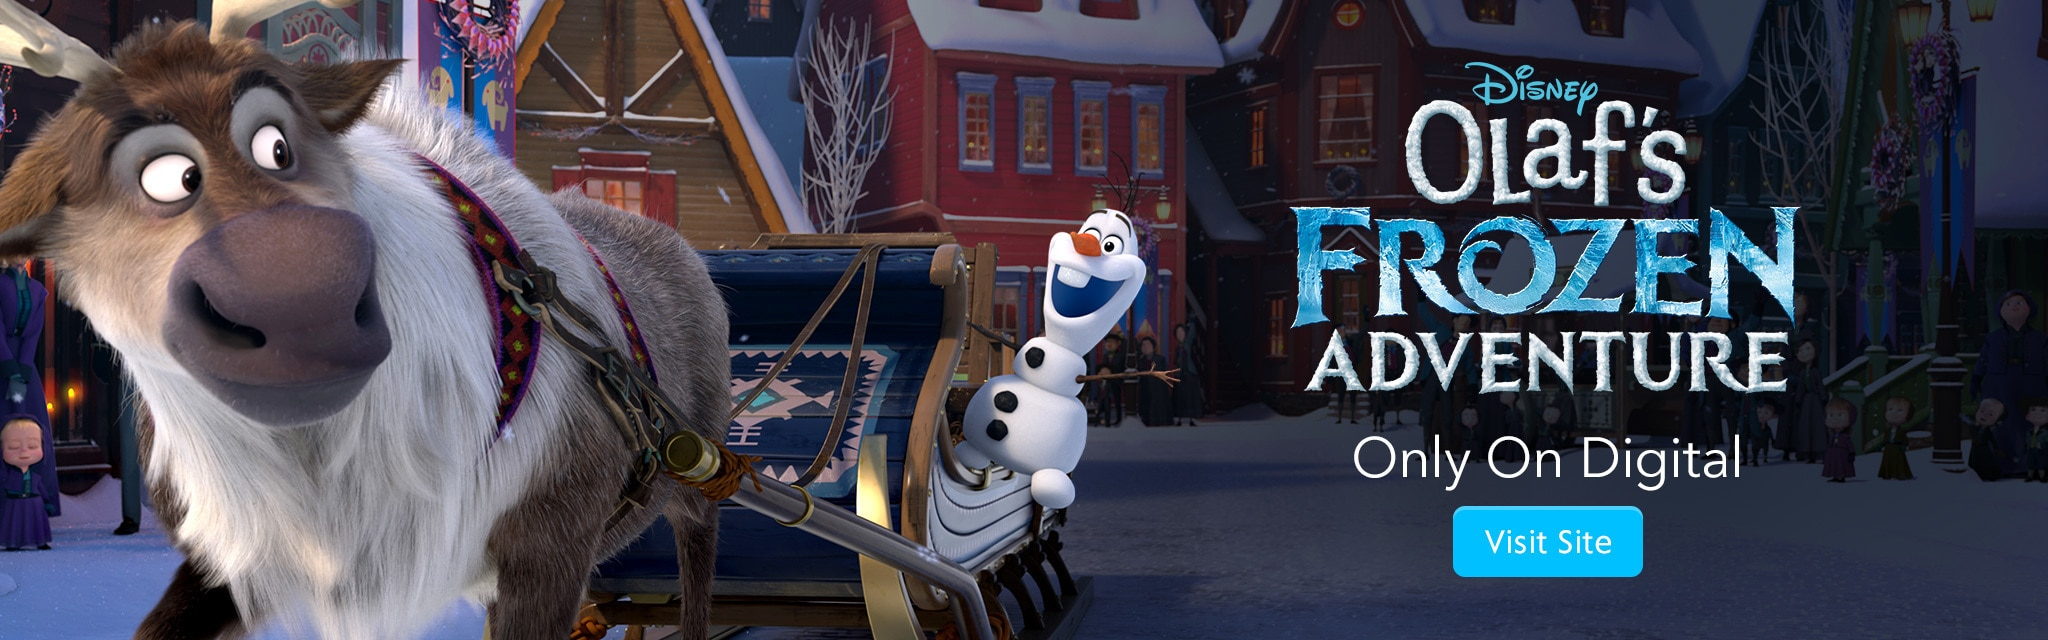 olafs frozen adventure only on digital visit site